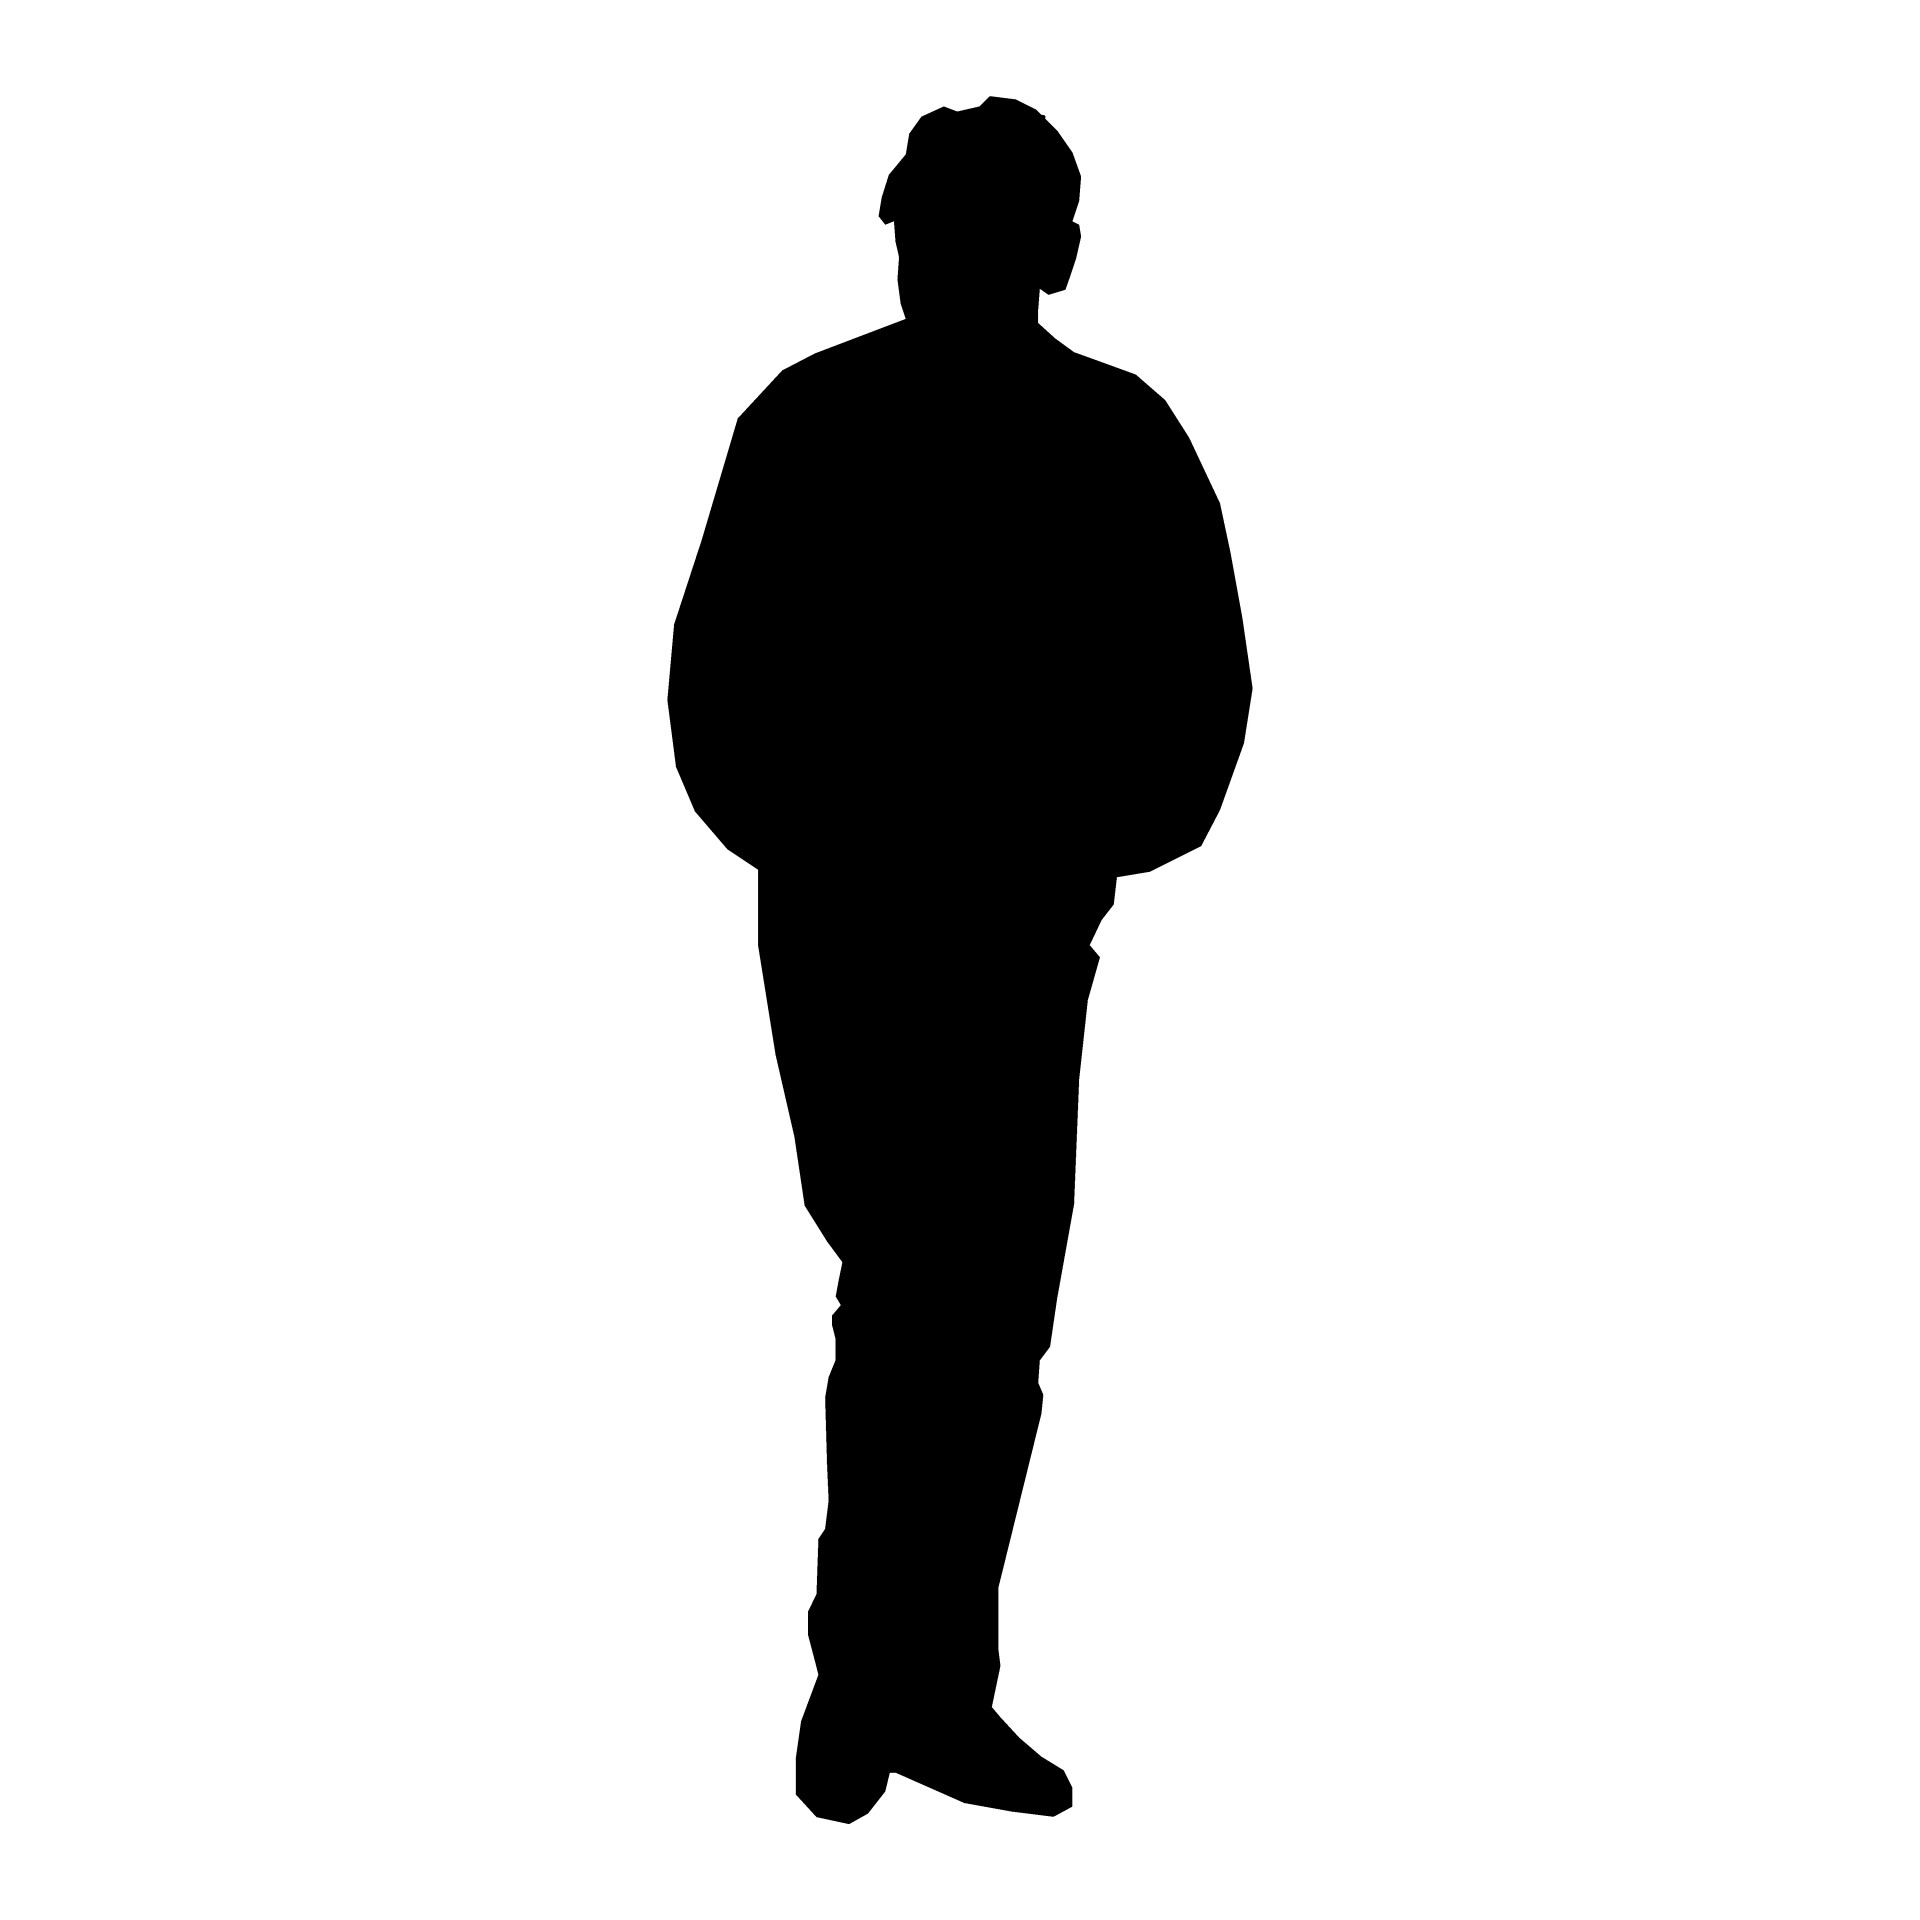 6 Silhouette Person Standing Icon Images